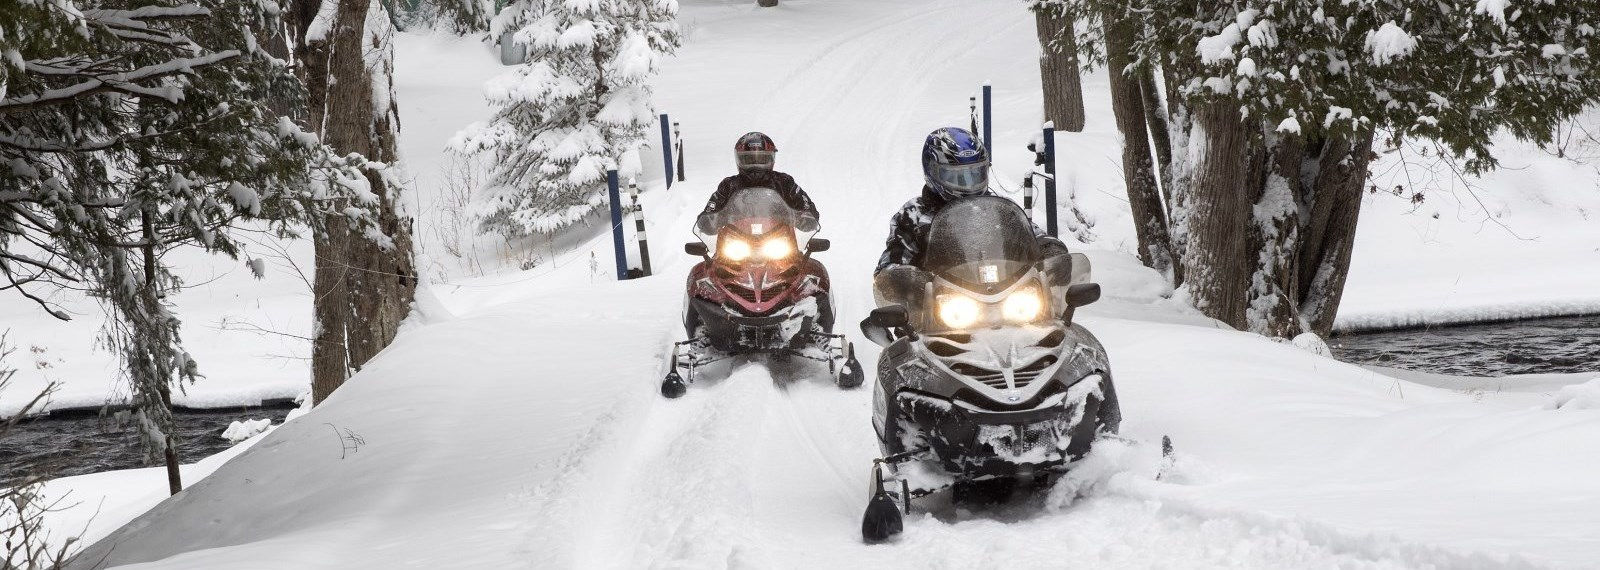 people on snowmobiles riding the trails